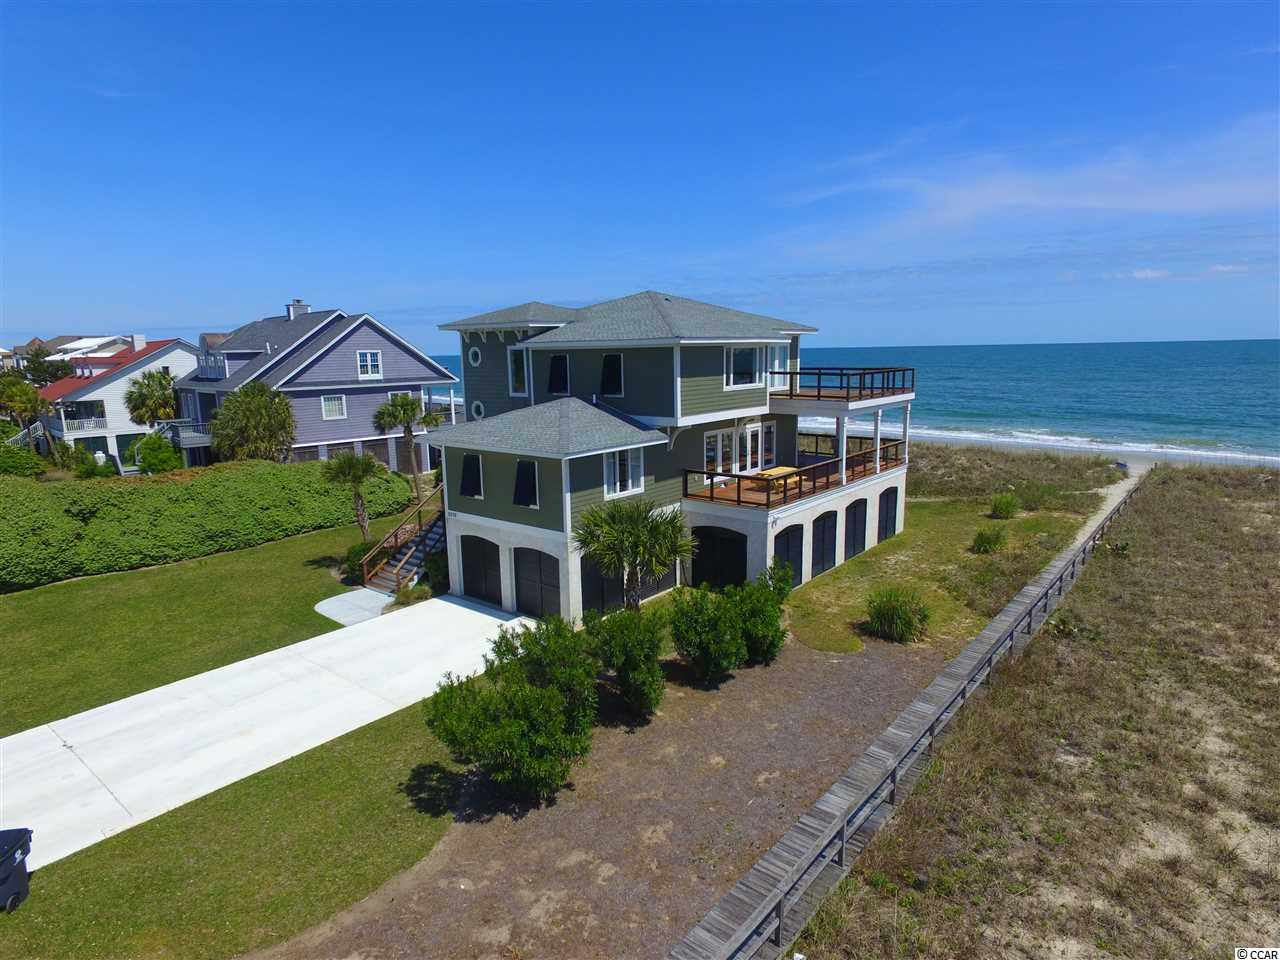 Garden City Beach Homes For Sale Dargan Real Estate Myrtle